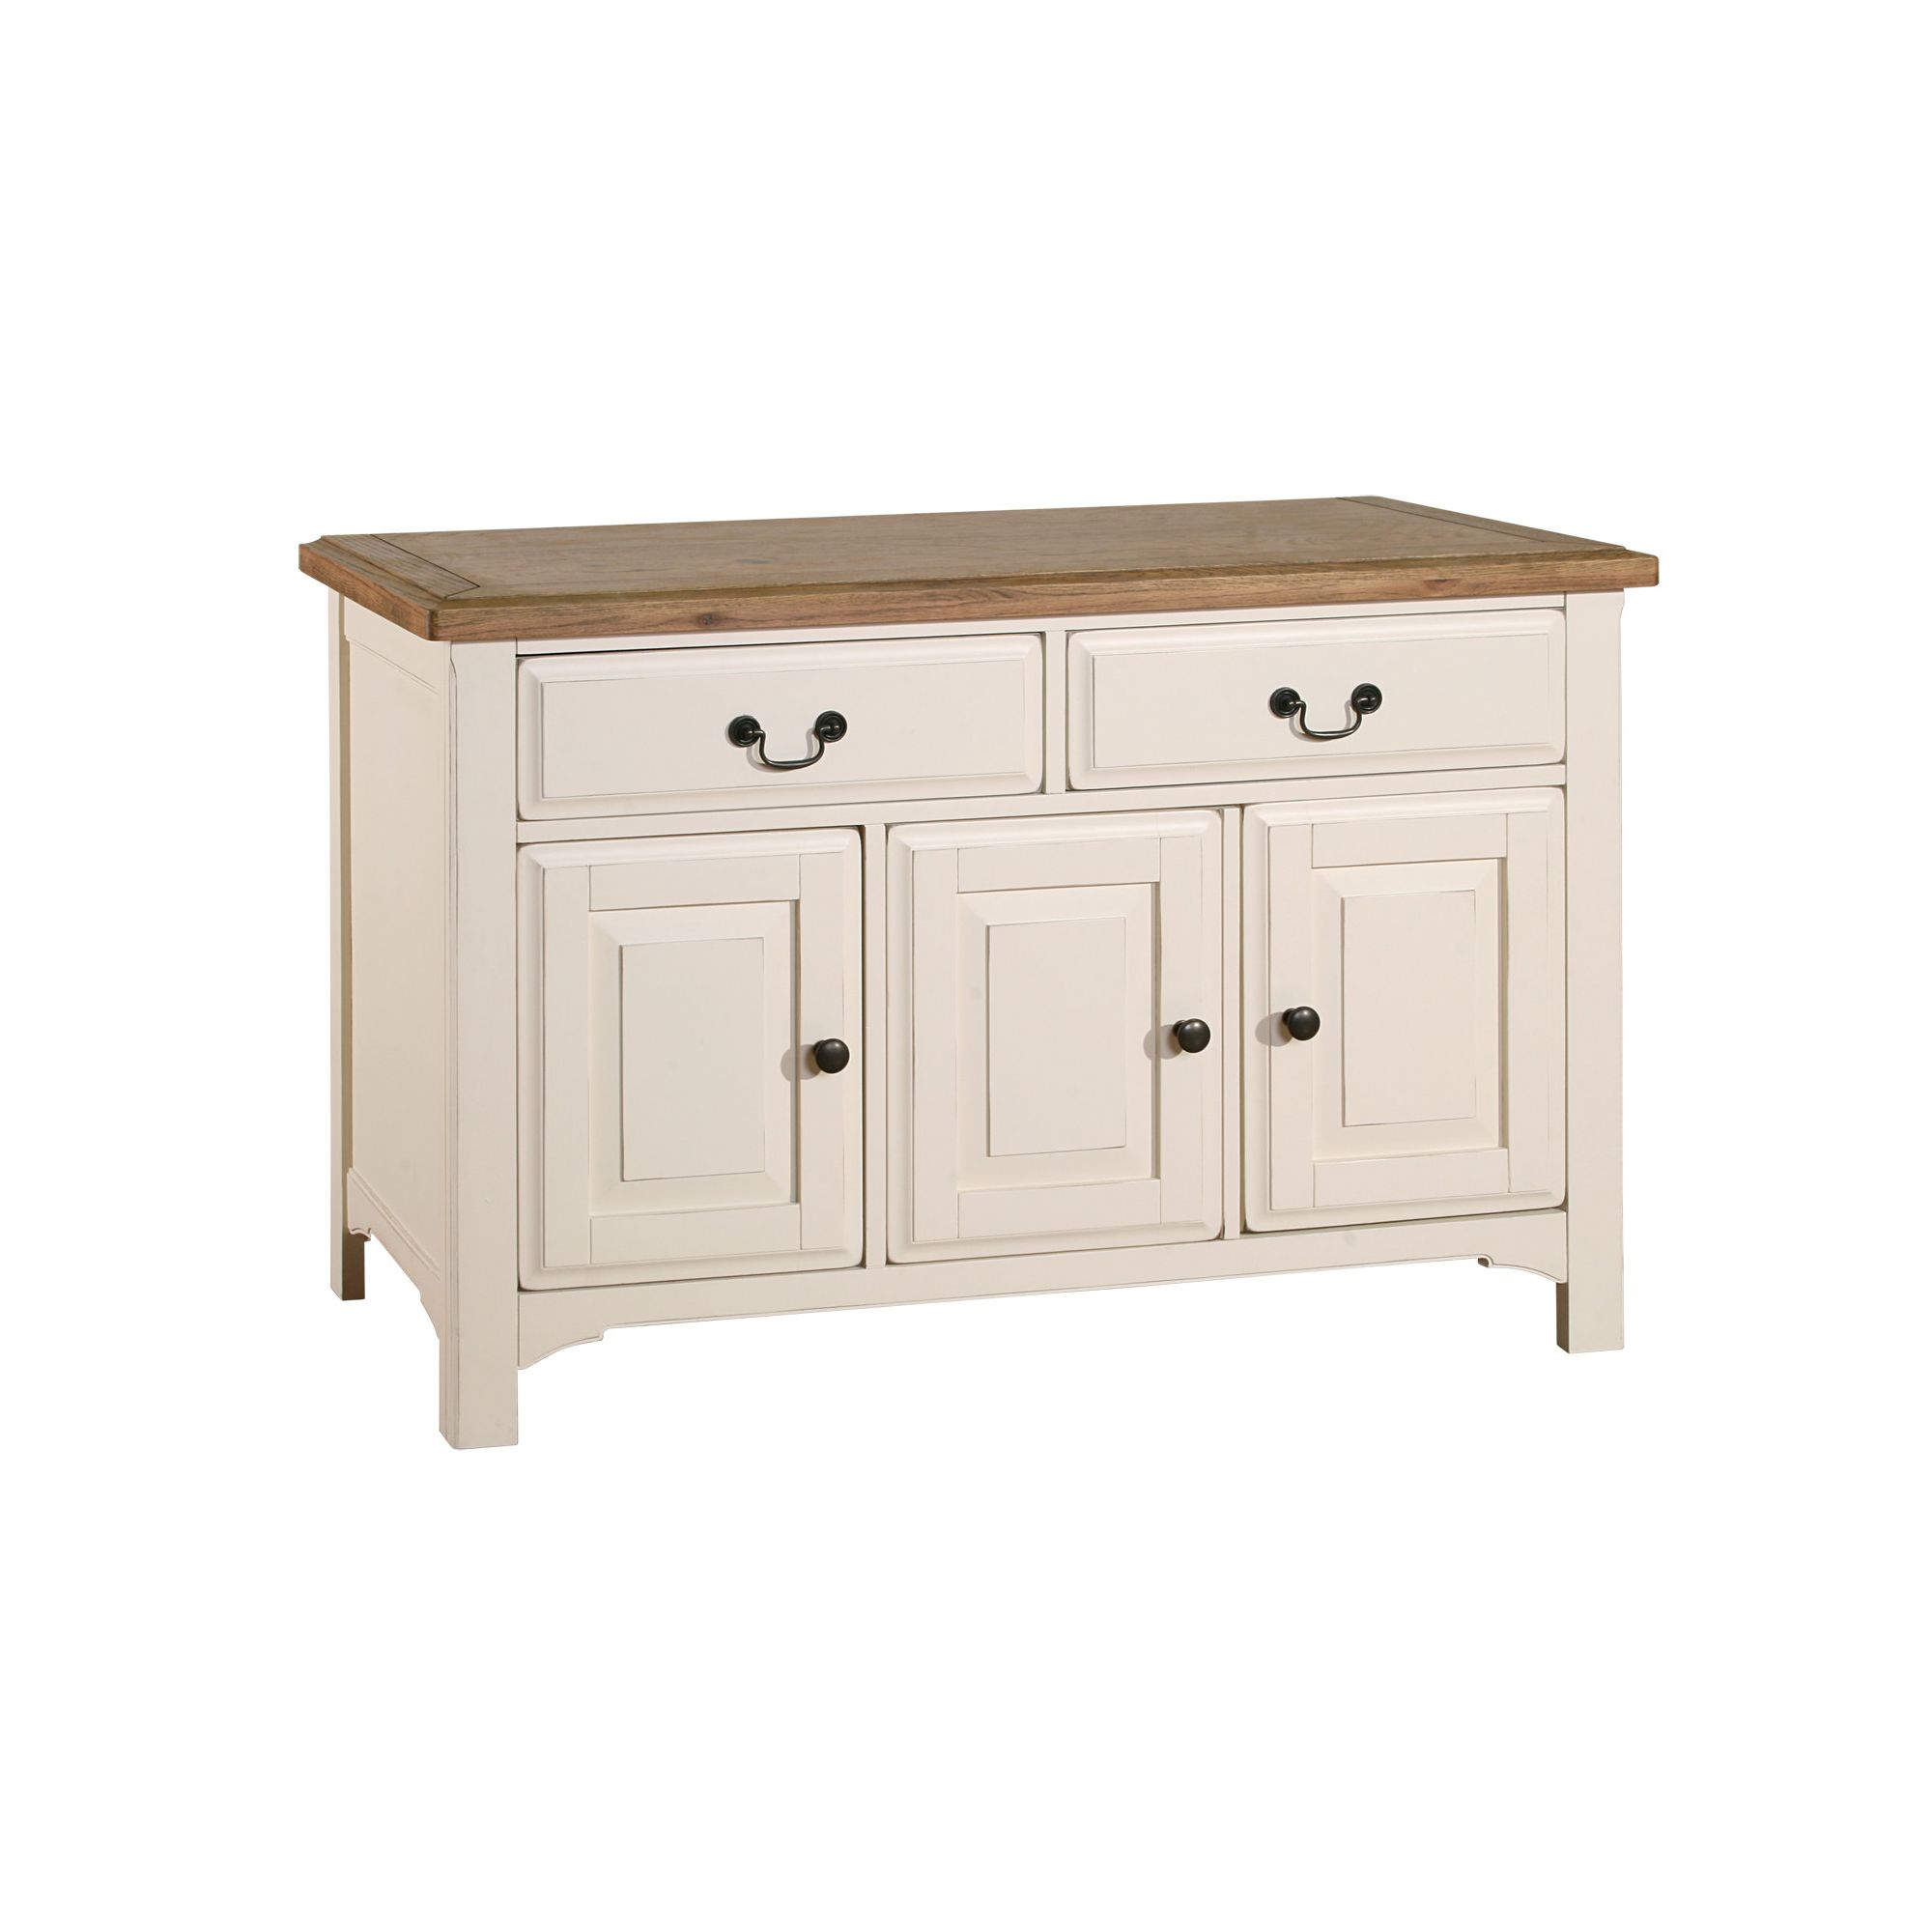 Alterton Furniture Marseille Large Sideboard at Tesco Direct